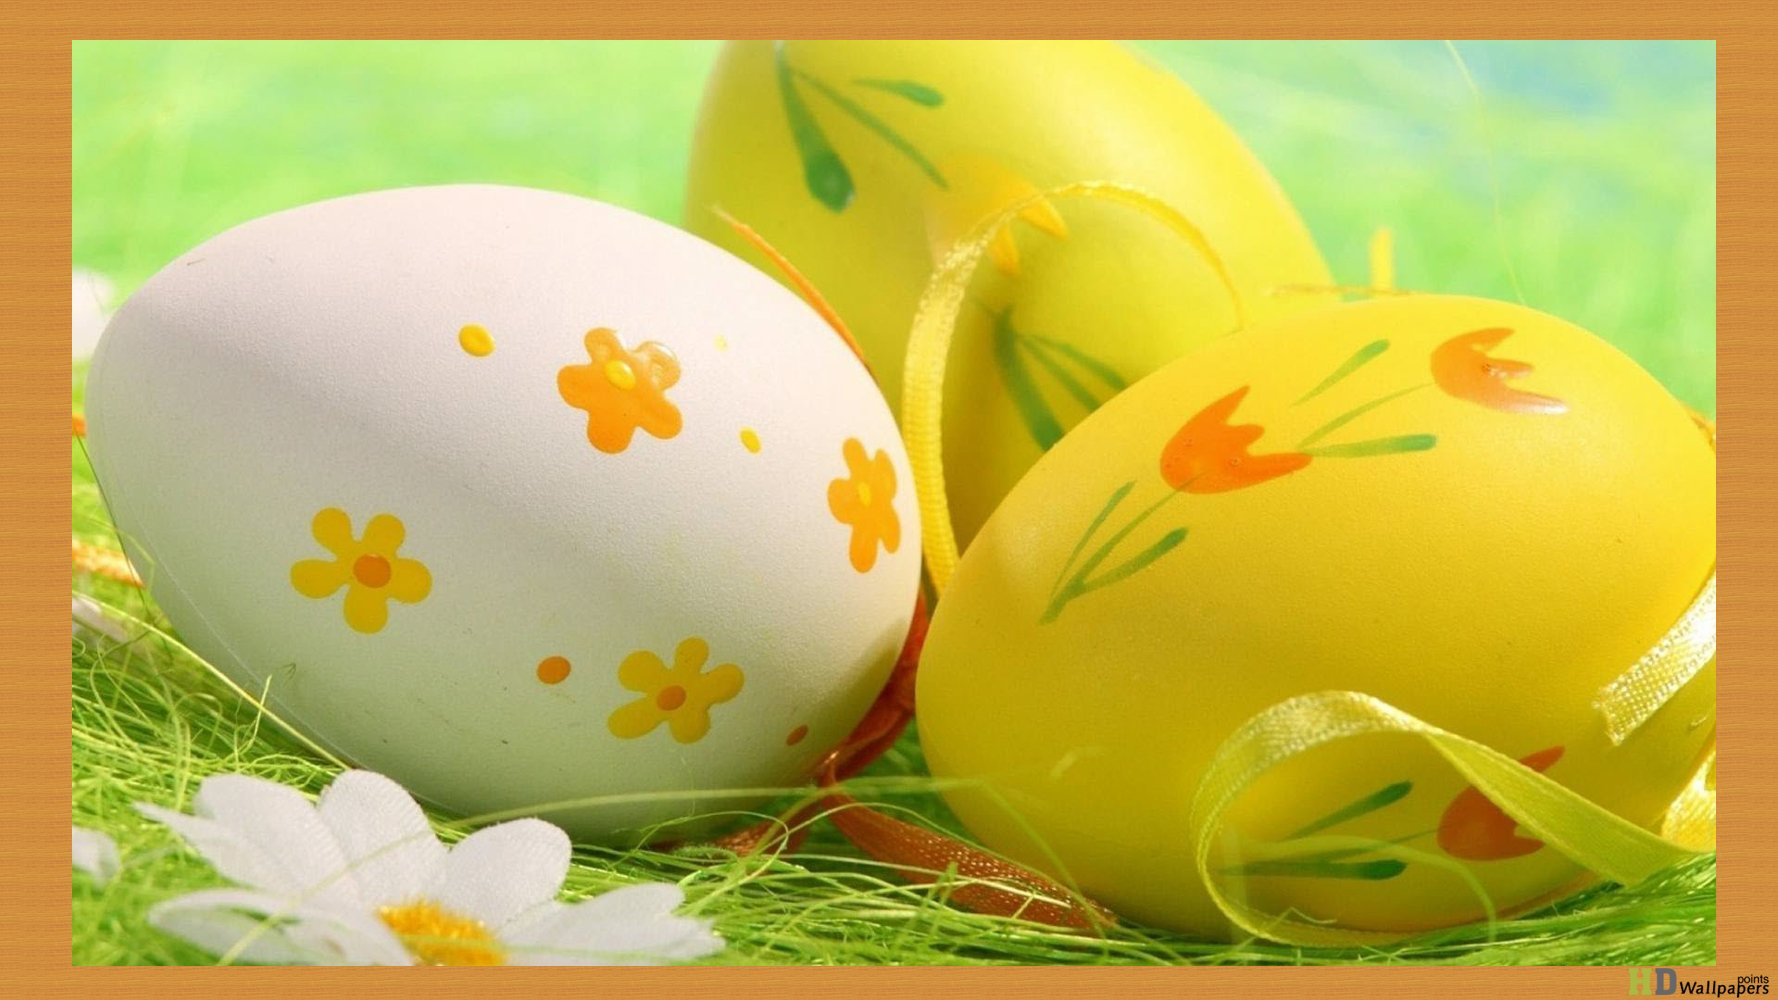 Easter Egg Wallpaper 2014 Happy Easter Eggs Wallpapers 2014 HD 1778x1000